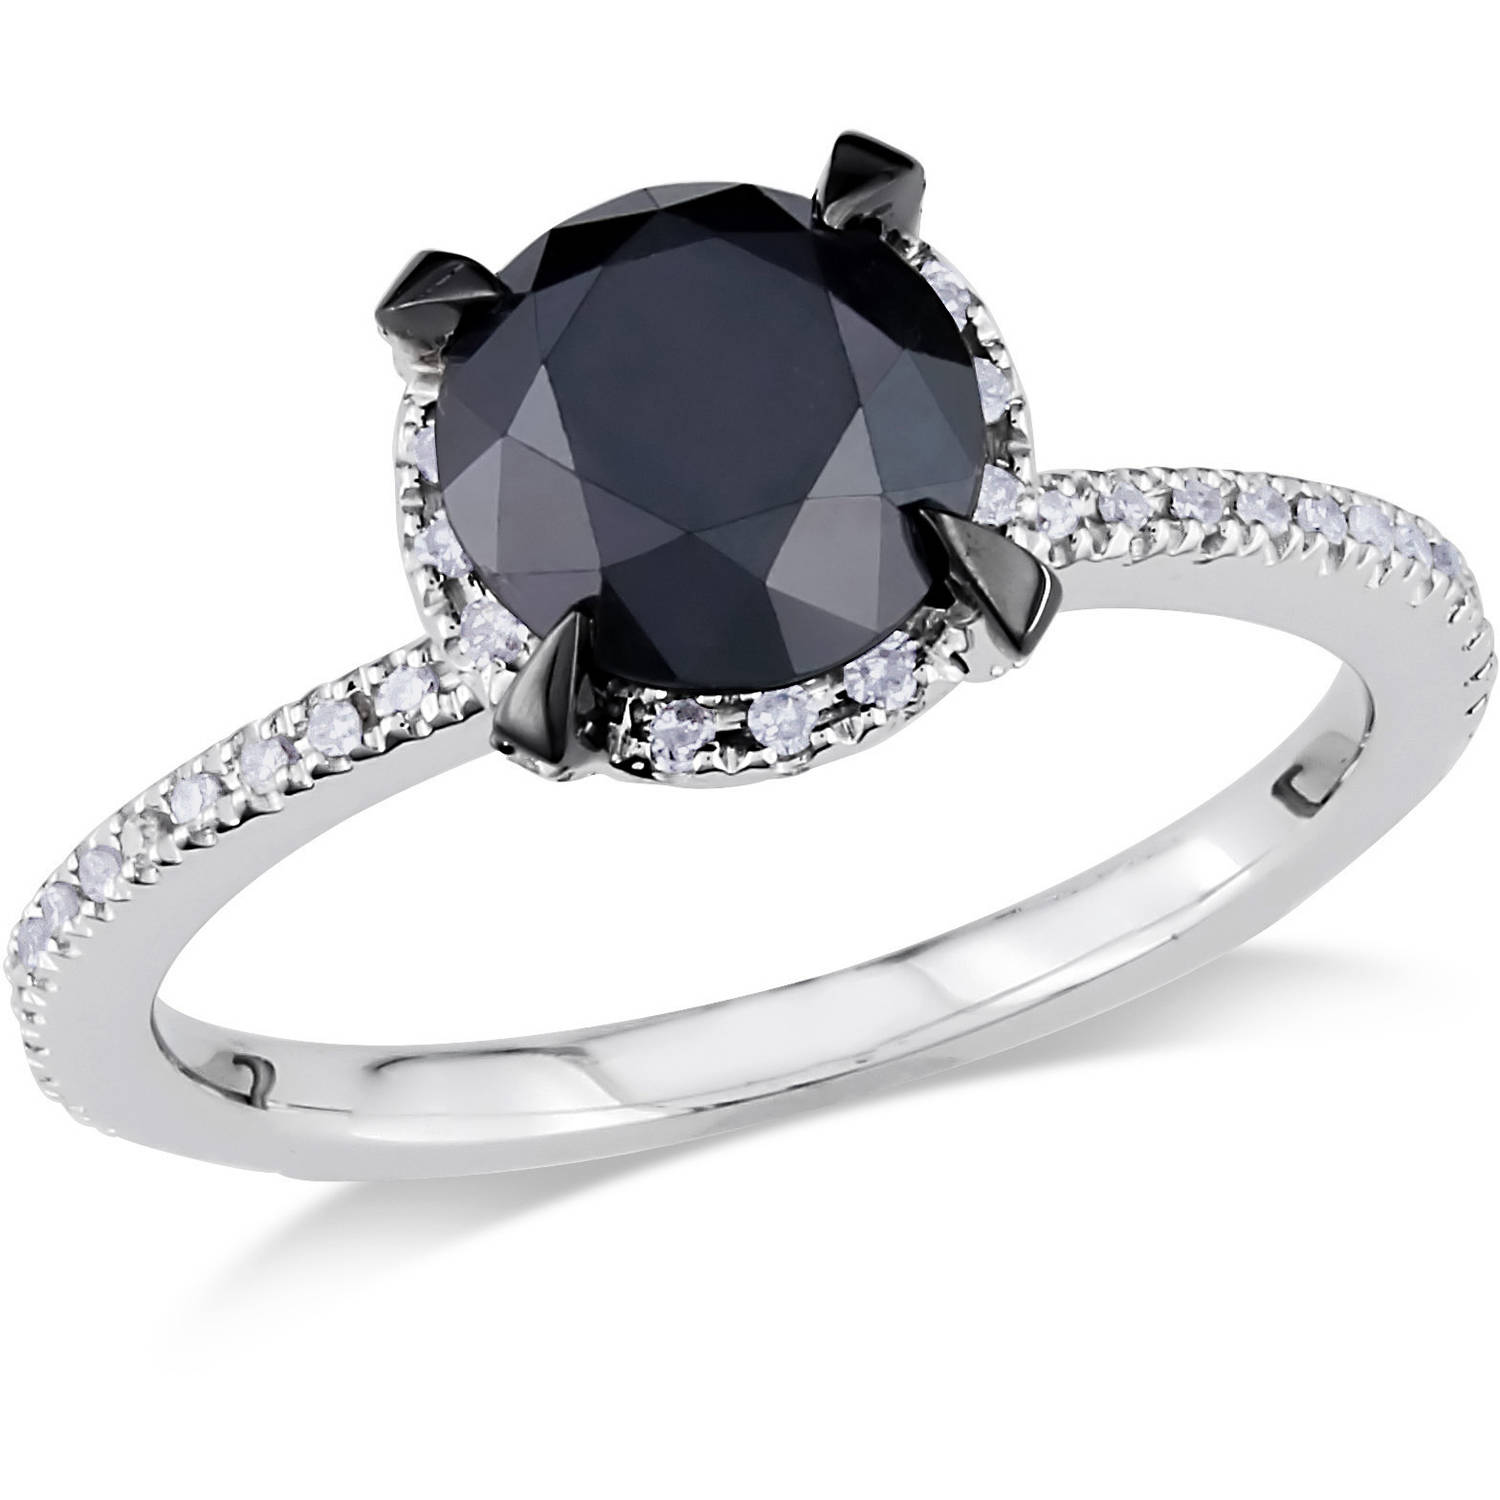 2 Carat T.W. Black and White Diamond 10kt White Gold Halo Engagement Ring